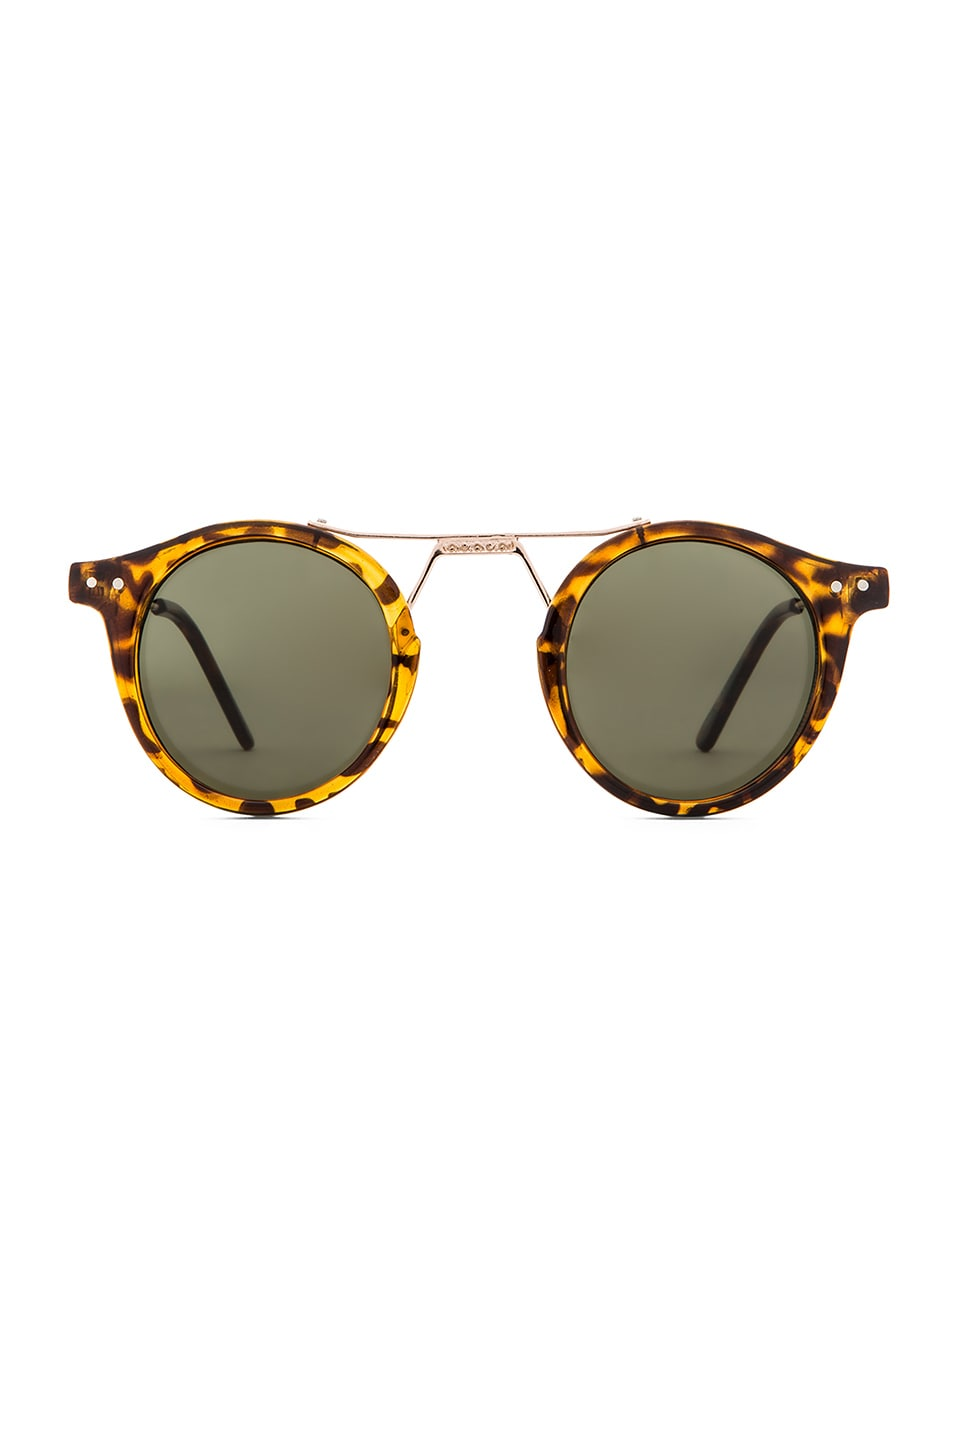 Spitfire PR 52 in Tortoise & Black